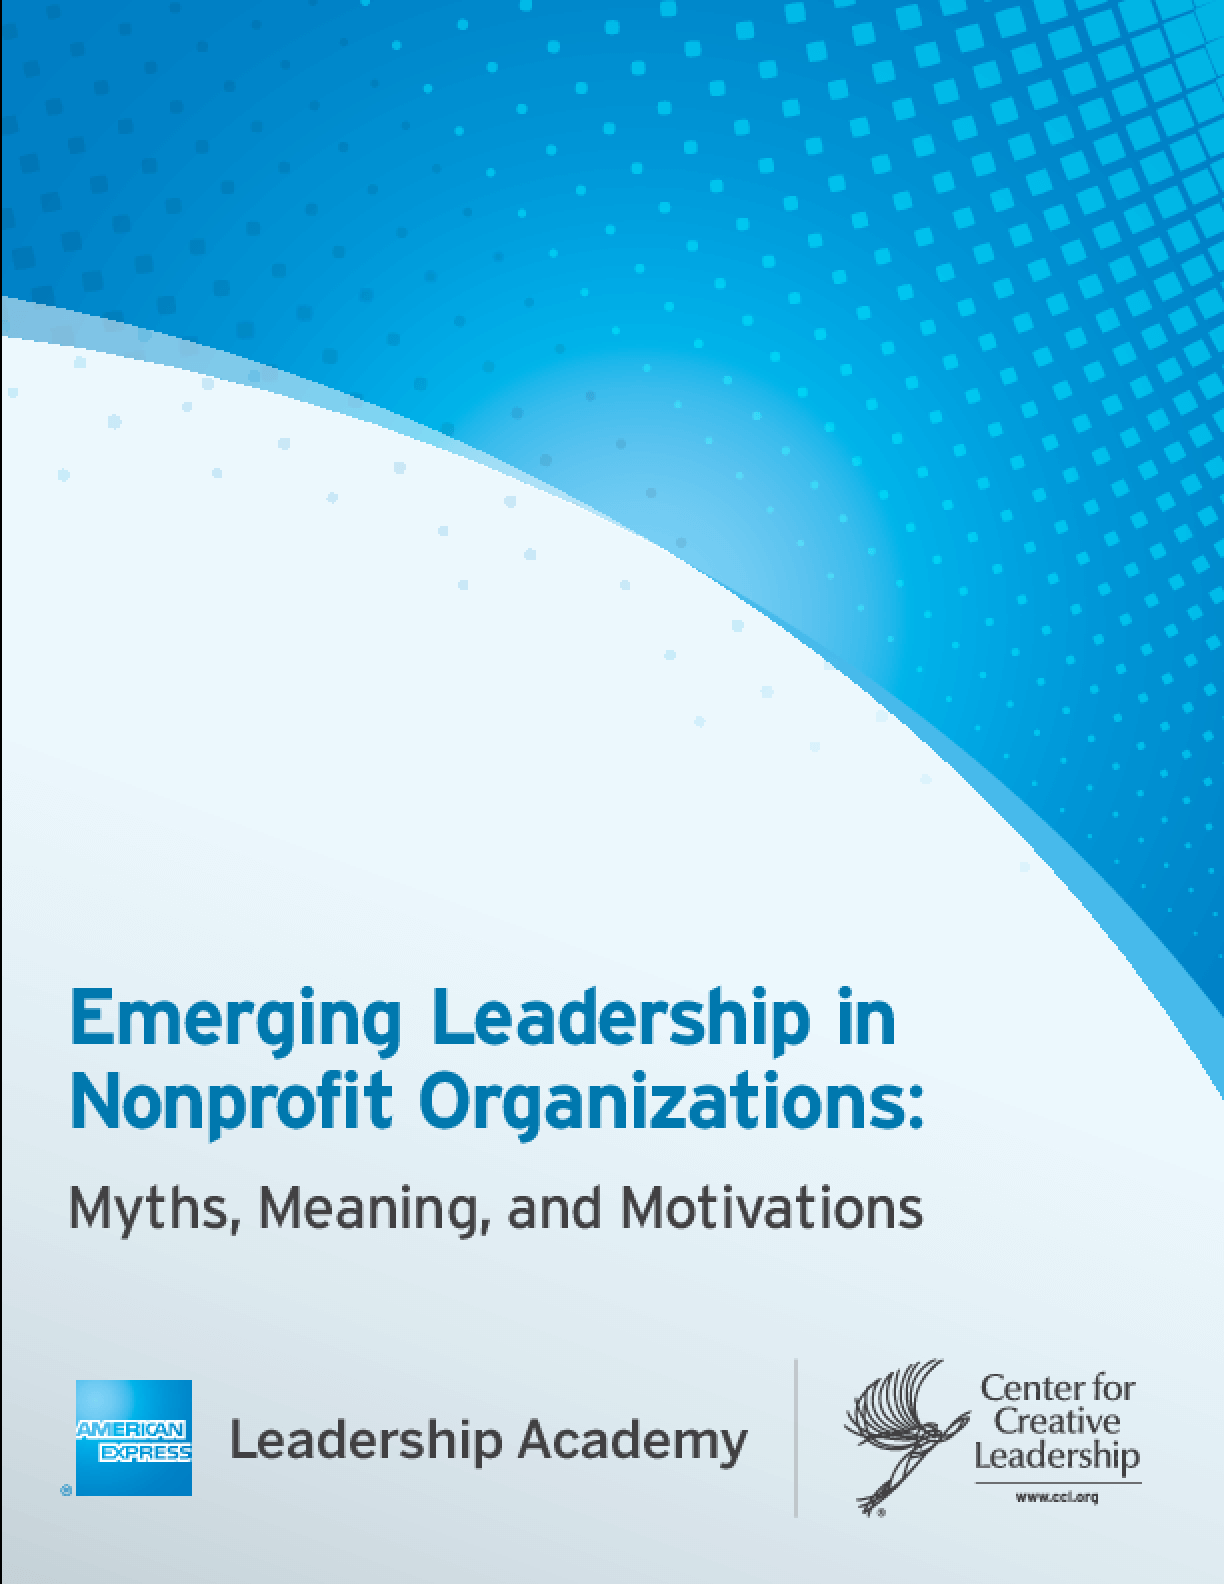 Emerging Leadership in Nonprofit Organizations: Myths, Meaning and Motivations